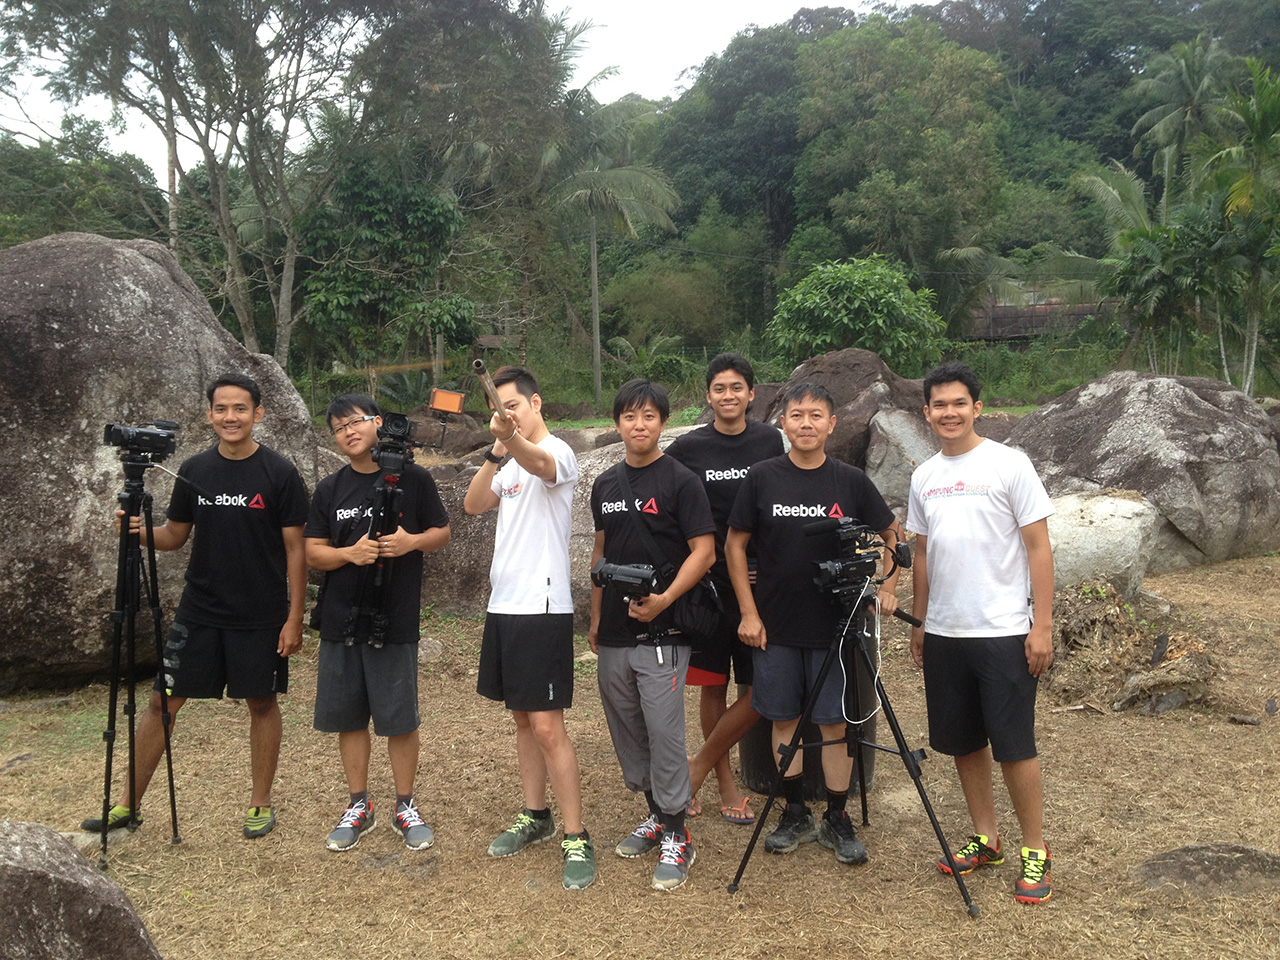 The camera team with host Jeremy Teo and Kampung Quest creators Feisal and Iskander Azizuddin